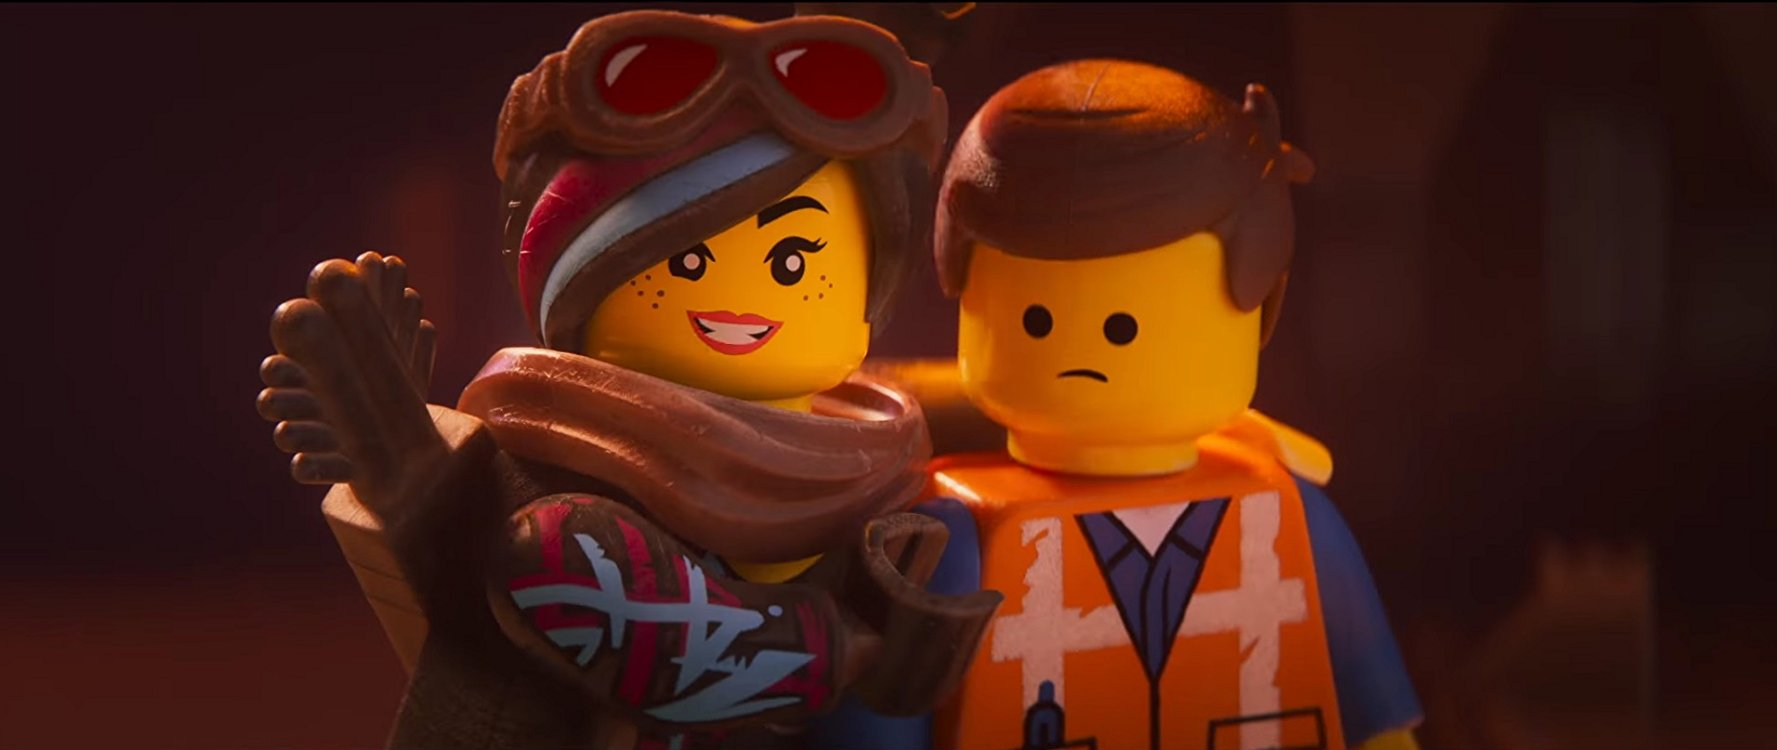 LEGO Filmi 2 – (The Lego Movie 2: The Second Part)